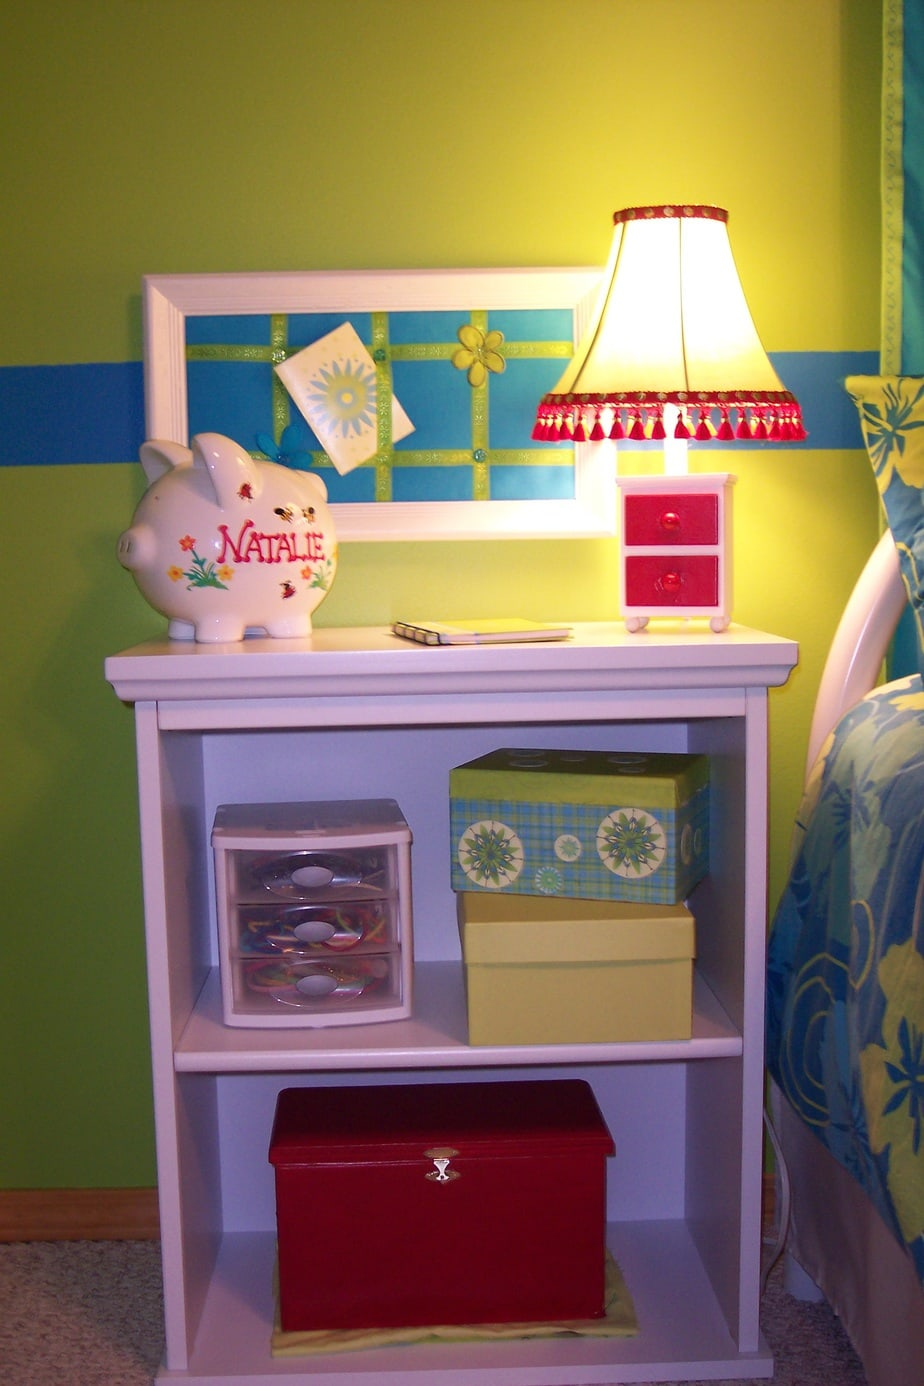 Girls bedroom on a budget night stand, lamp, message board